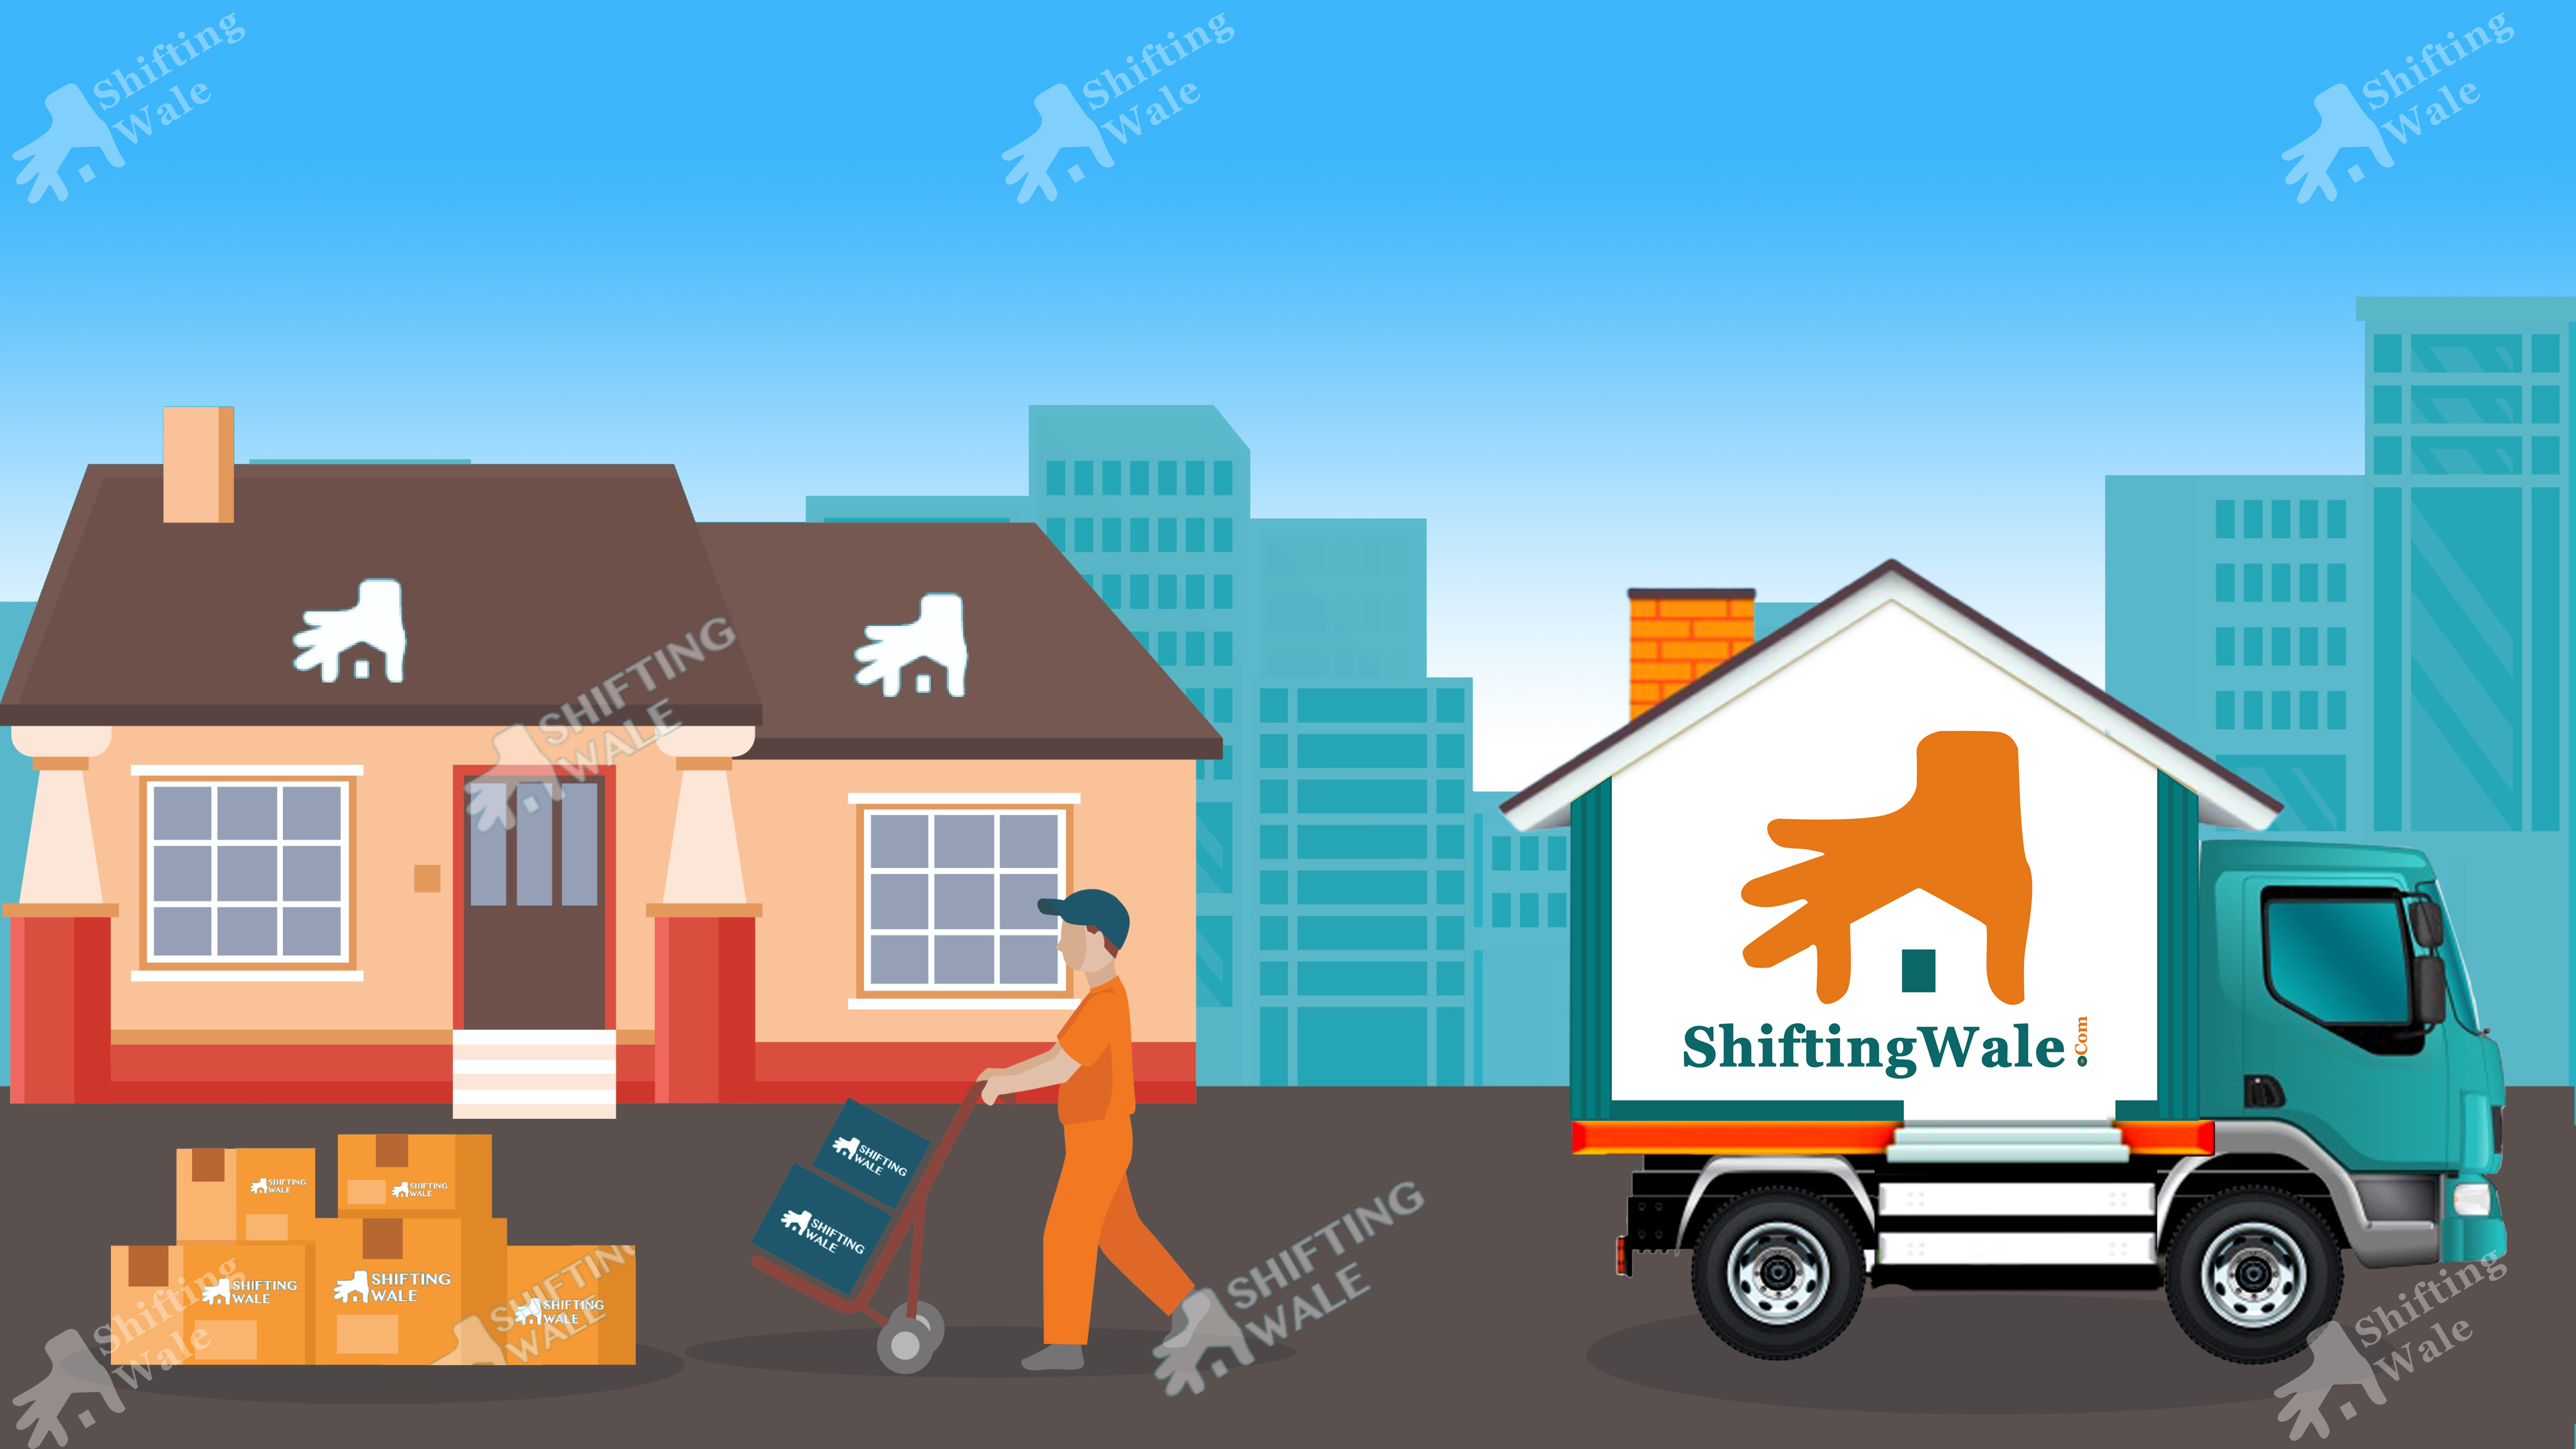 Best Household Goods From Sonipat Panipat Karnal Ambala to Hyderabad Bangalore Chennai Kochi